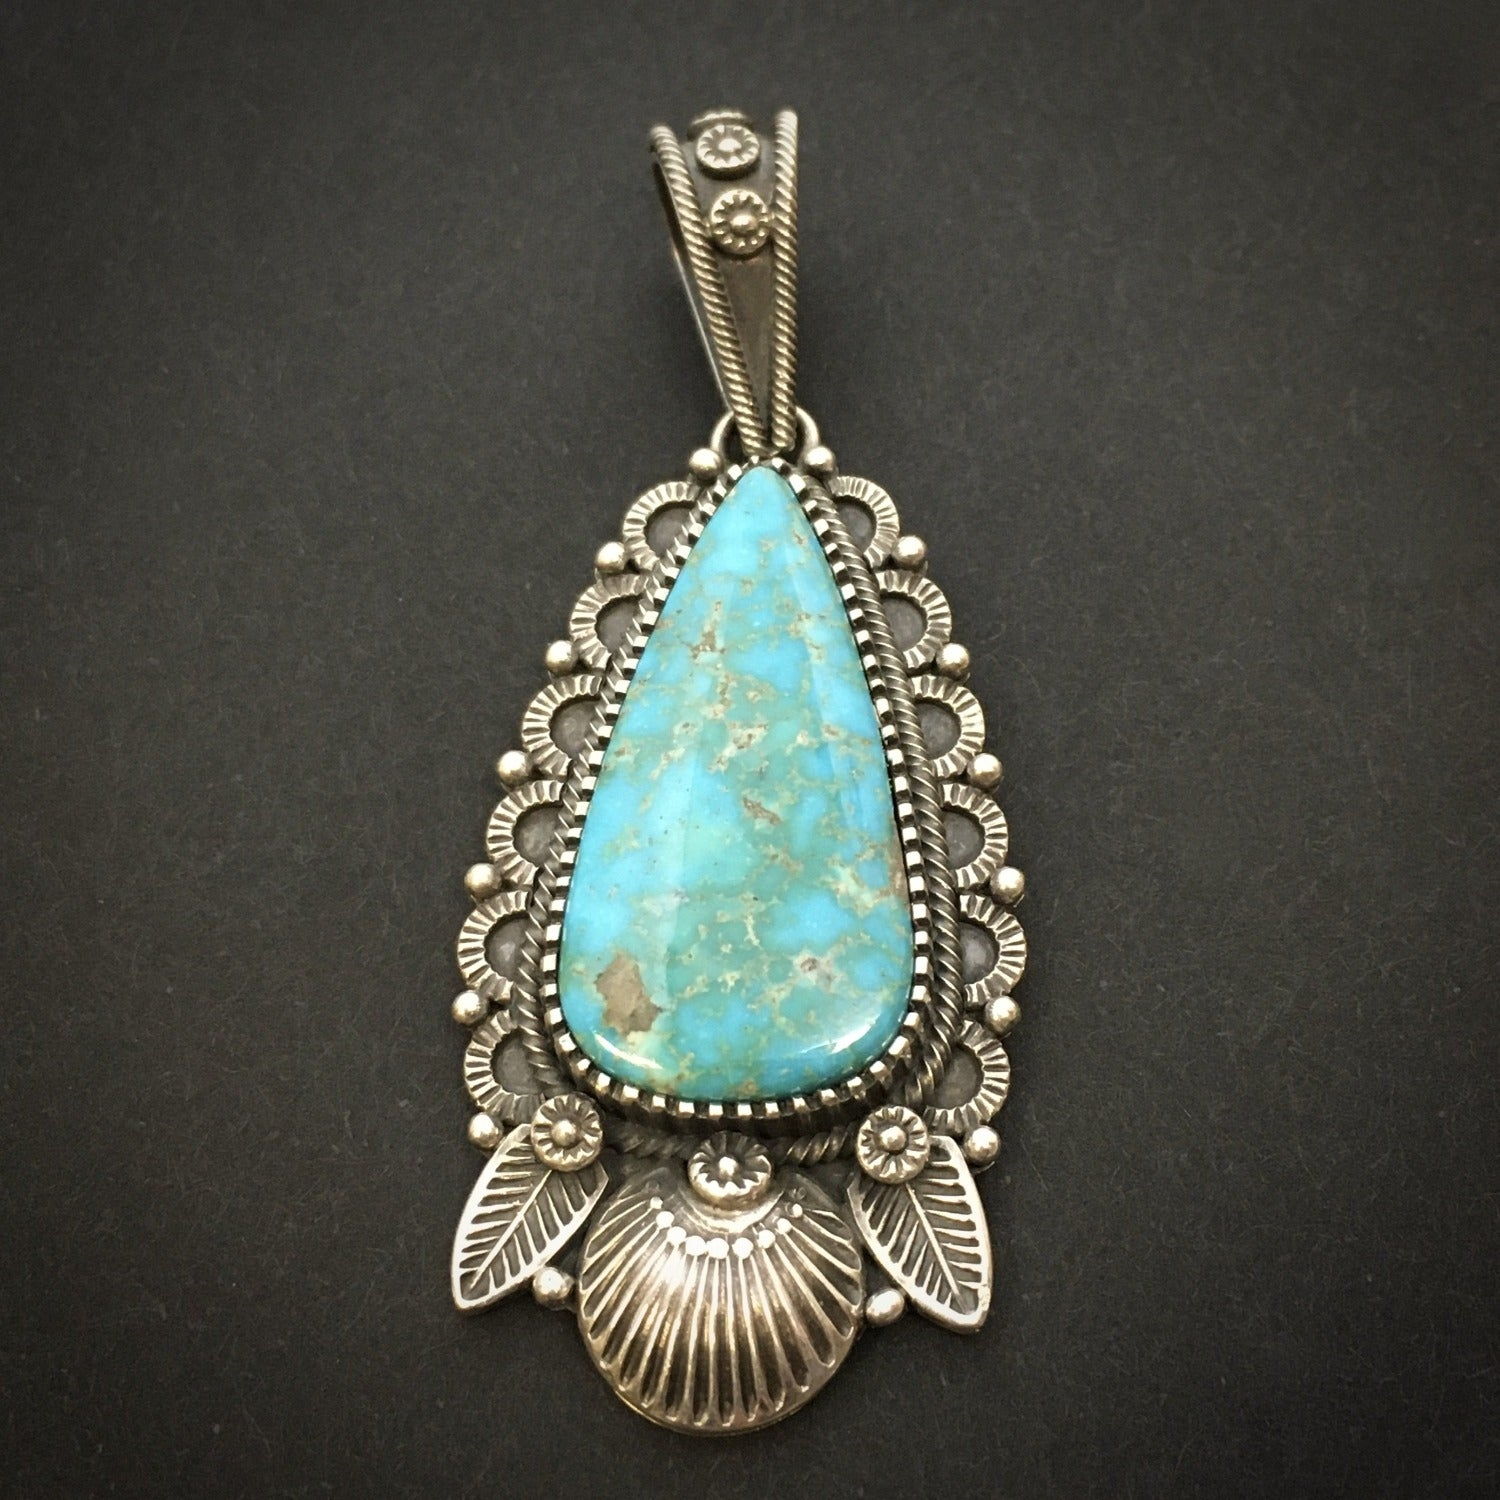 Navajo Jewelry at Raven Makes Jewelry